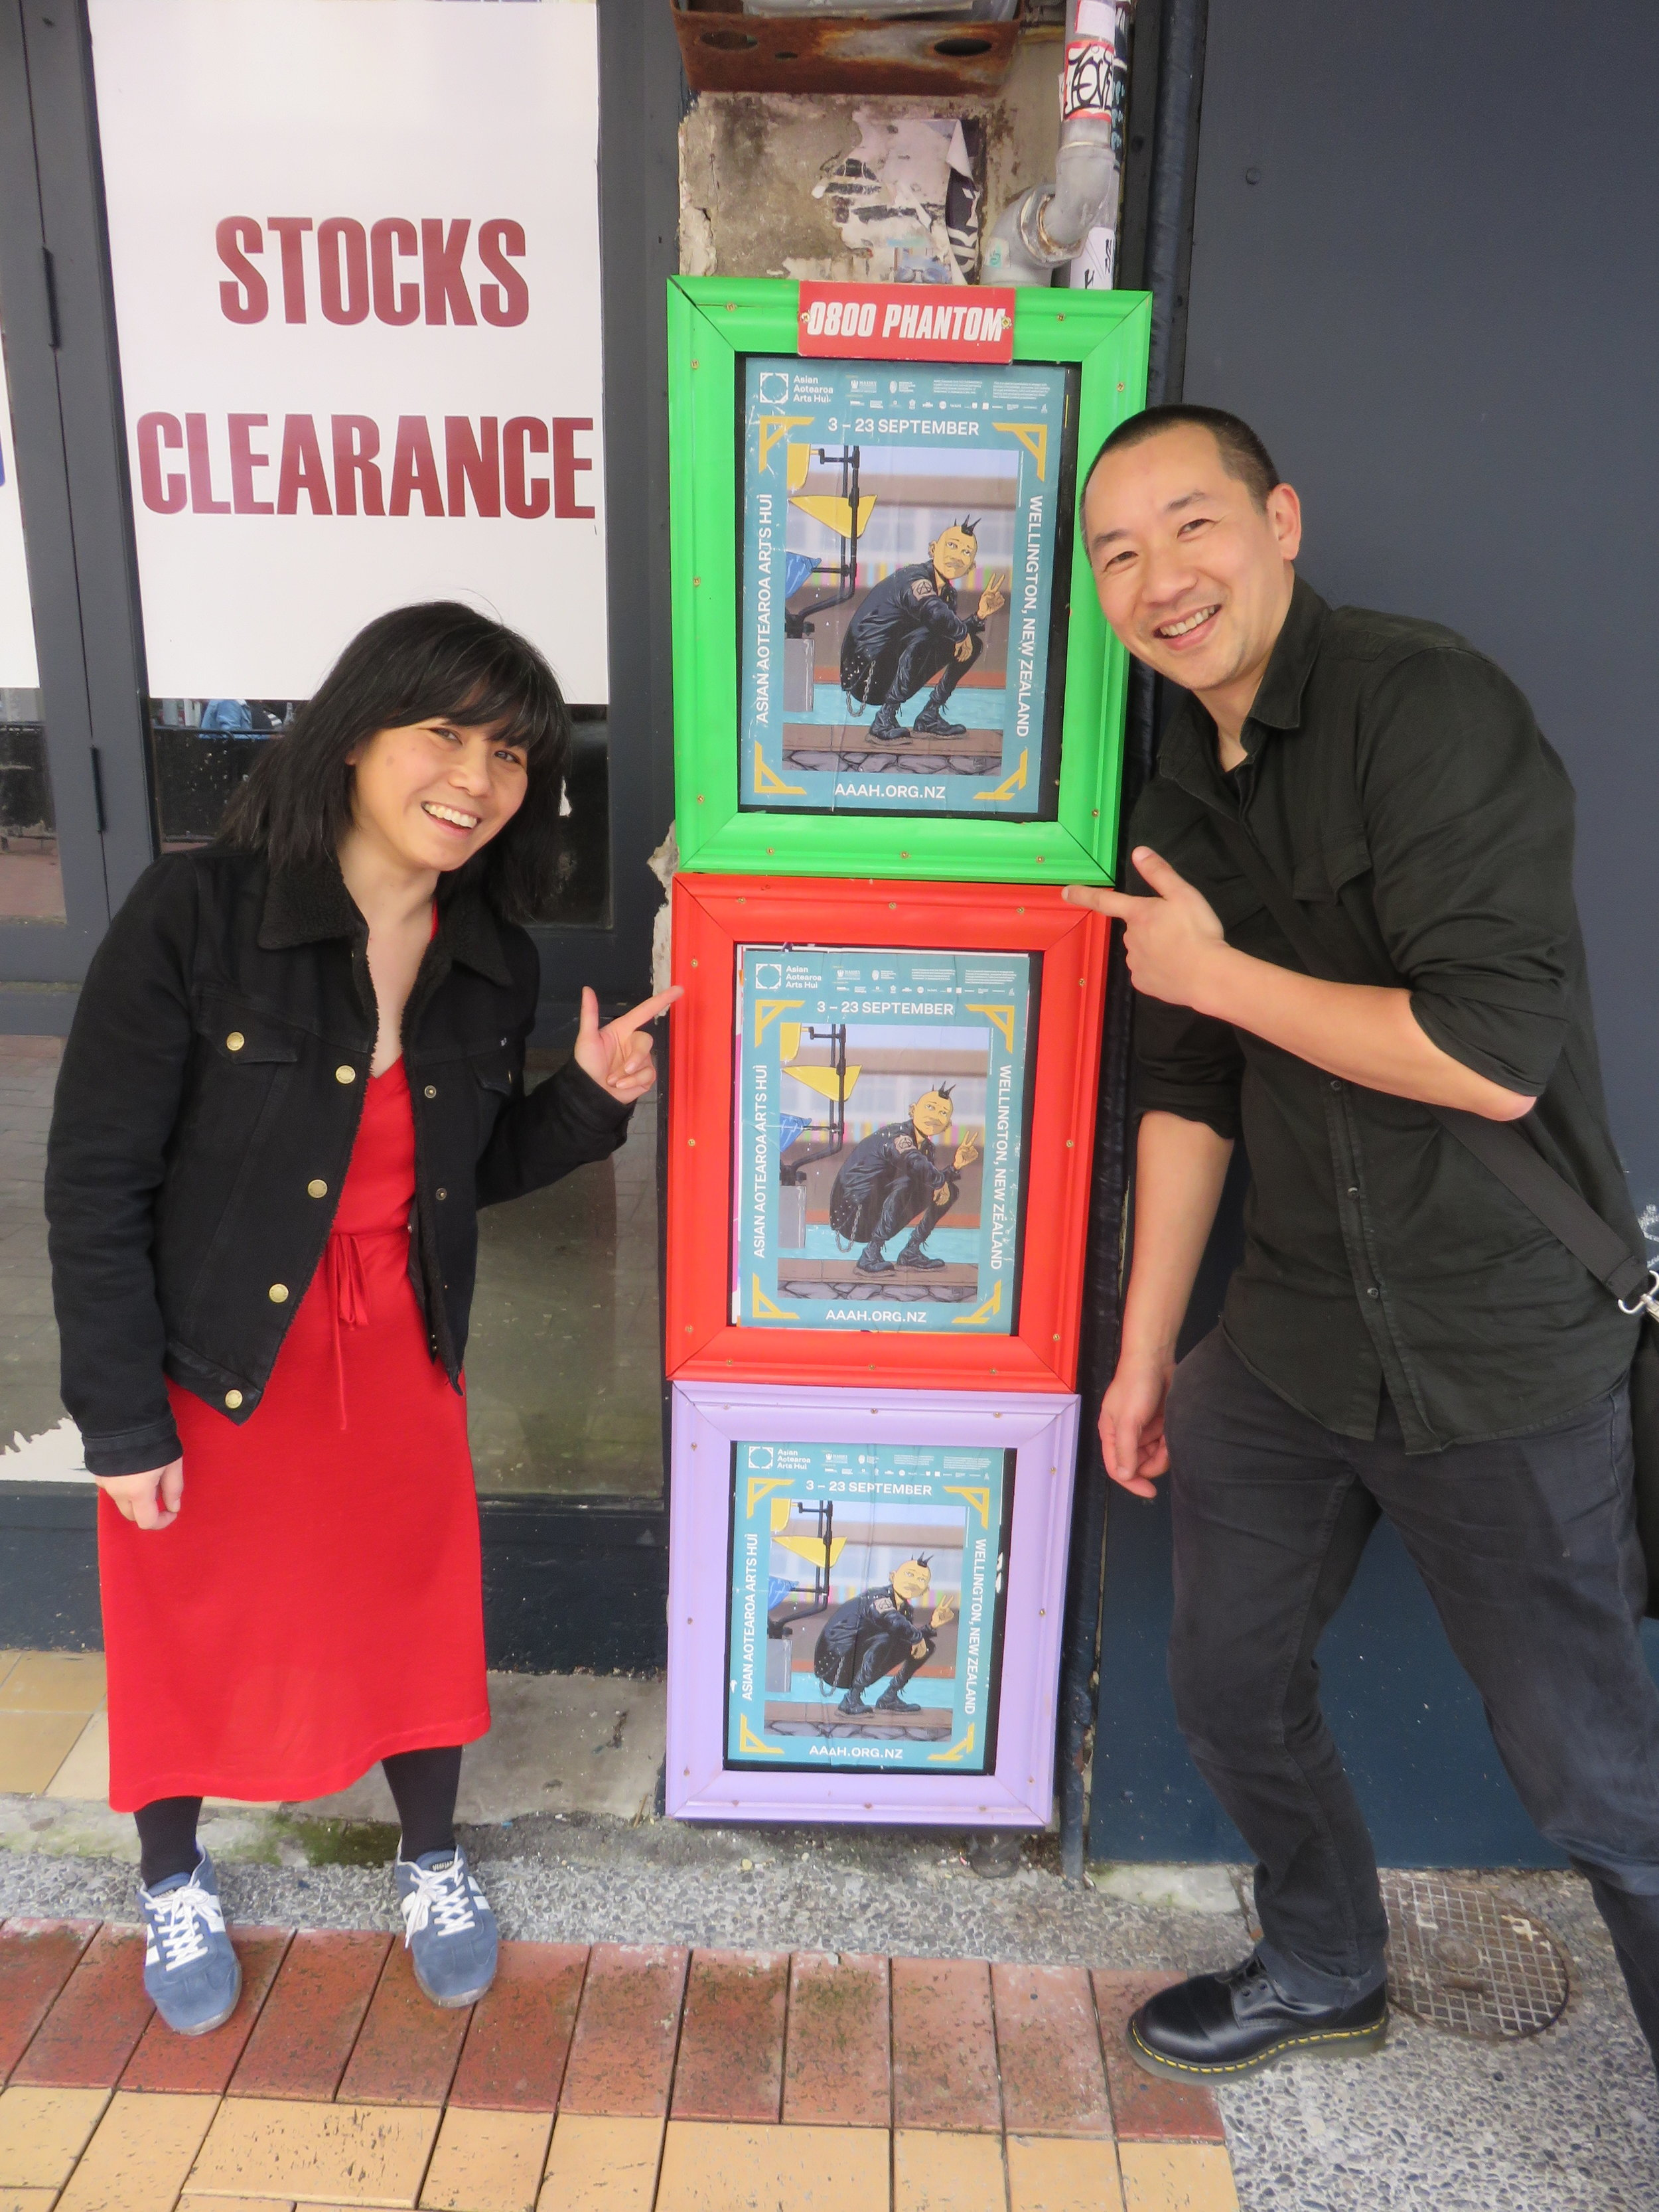 Kerry Ann Lee and Ant Sang with the AAAH2018 Artist Billboard Campaign, 1 - 23 September, Wellington CBD. Photo by Sam Buchanan